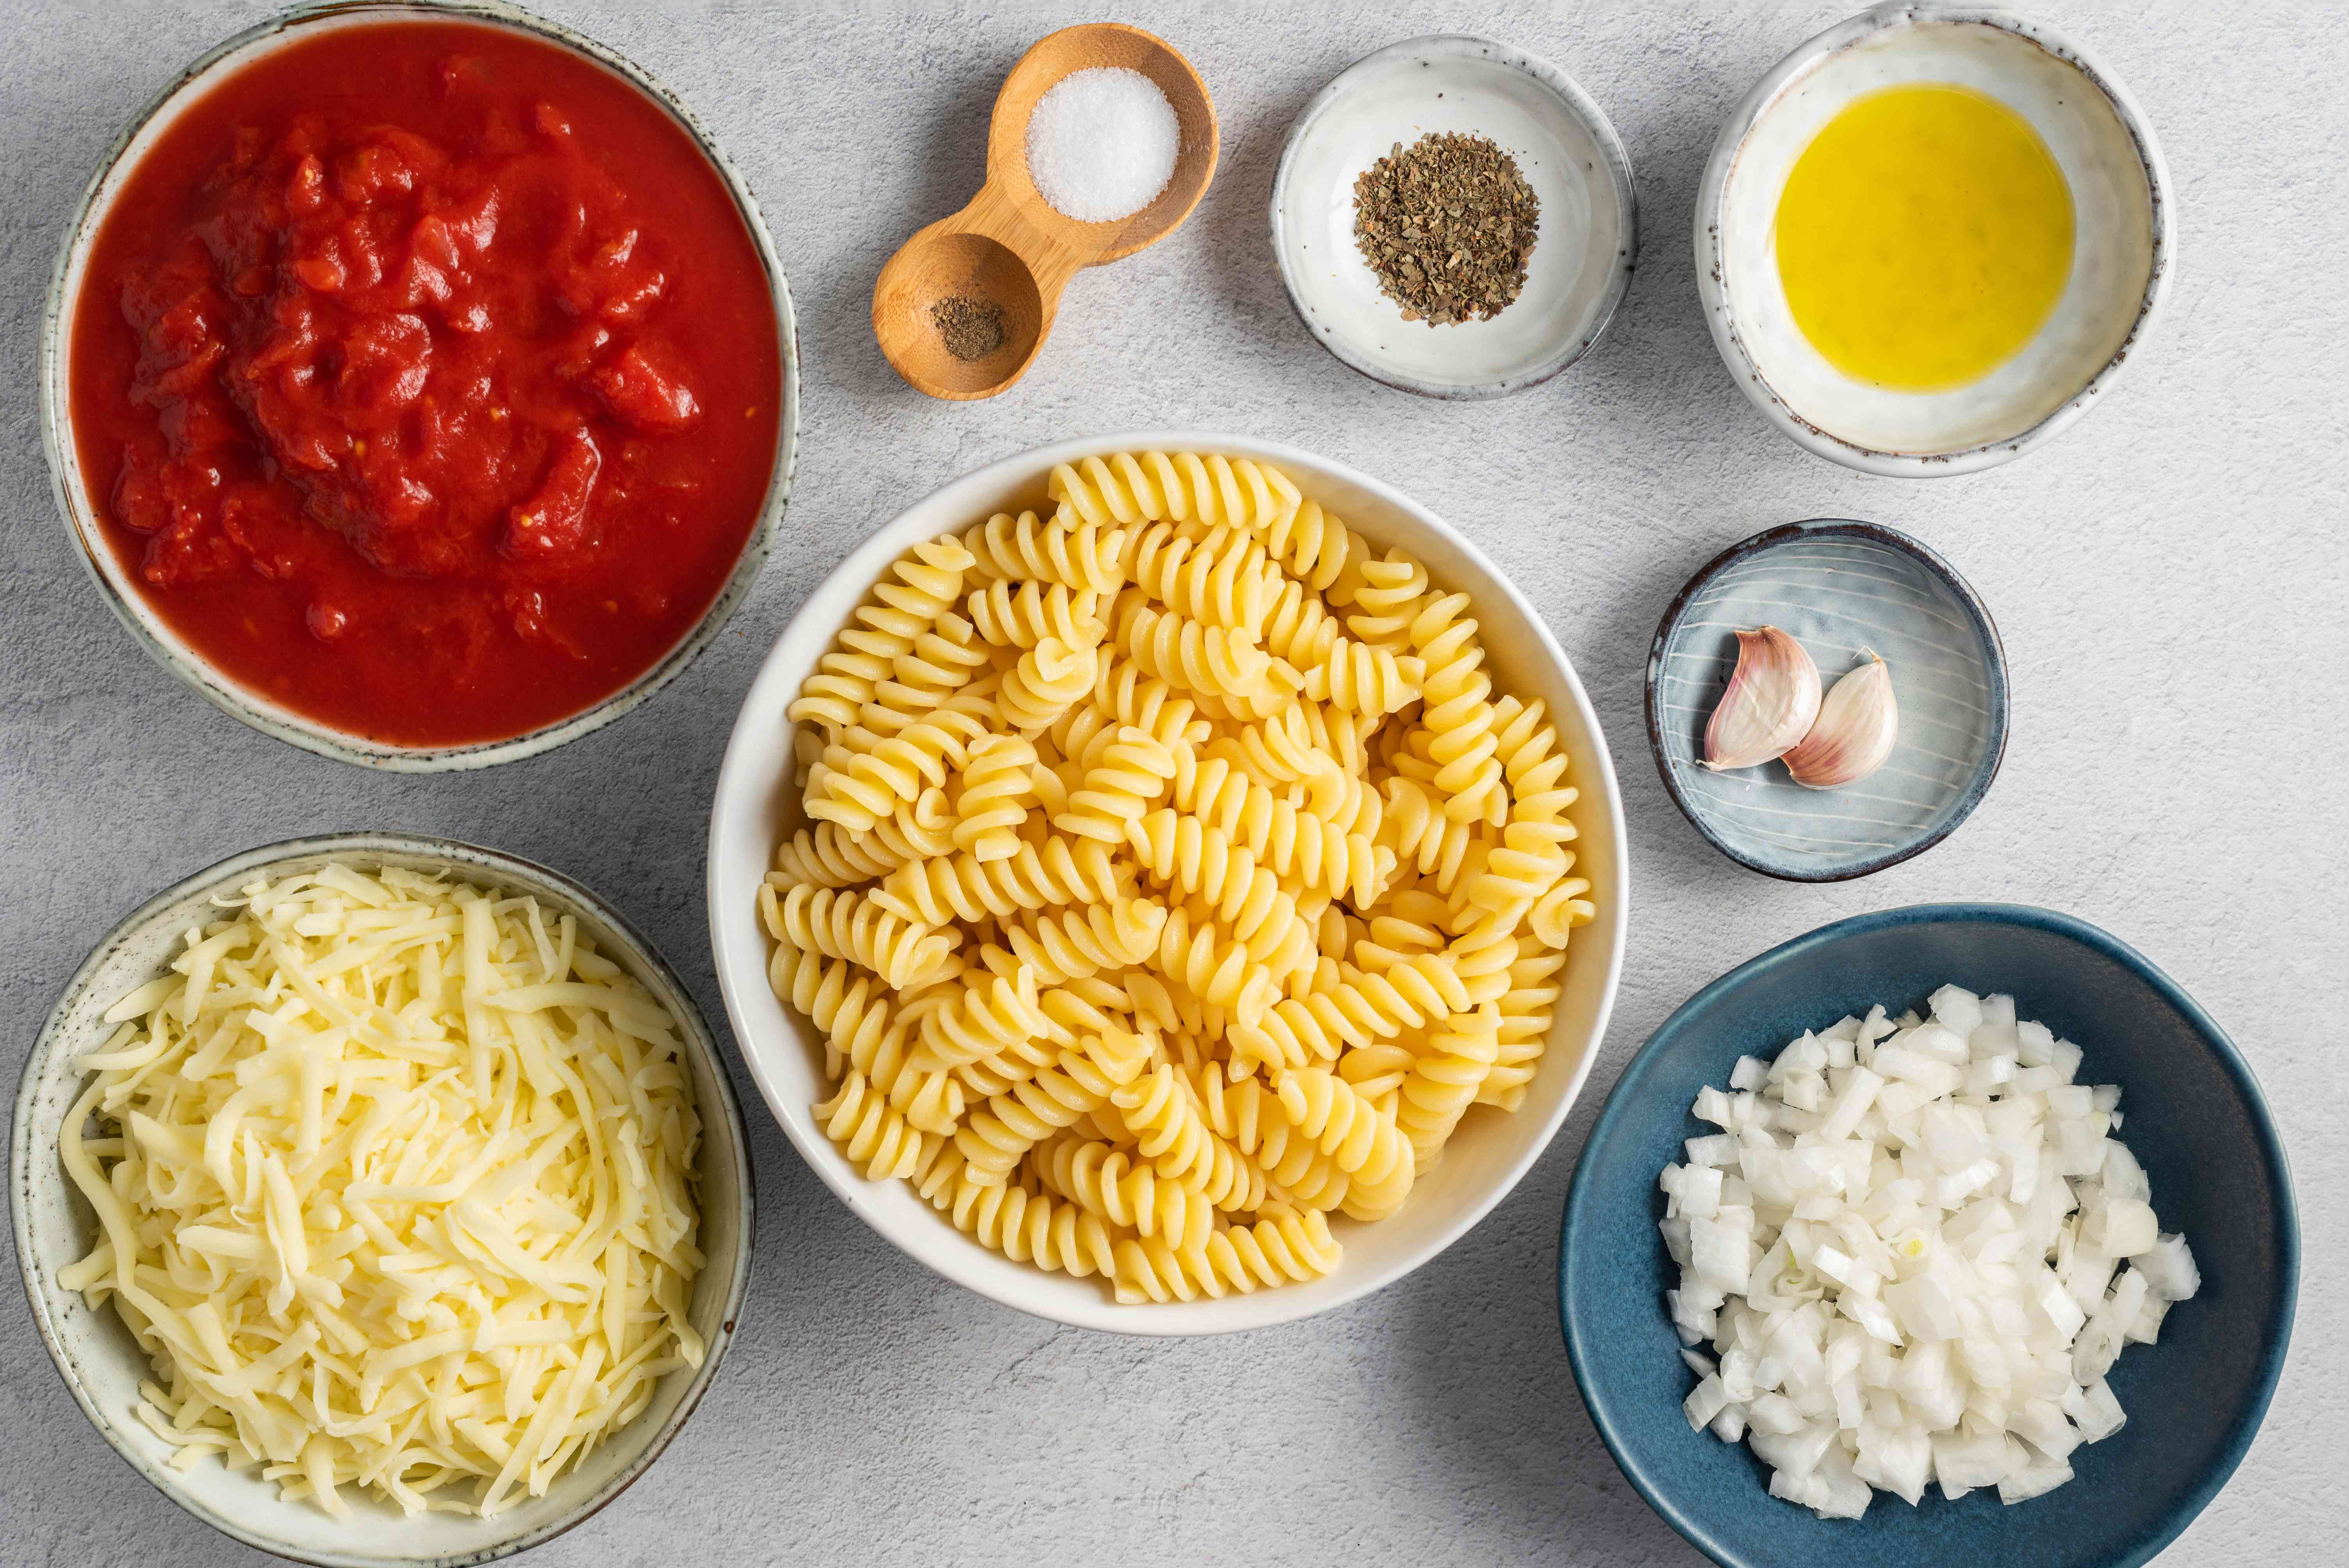 Ingredients for rotini bake with tomatoes and cheese